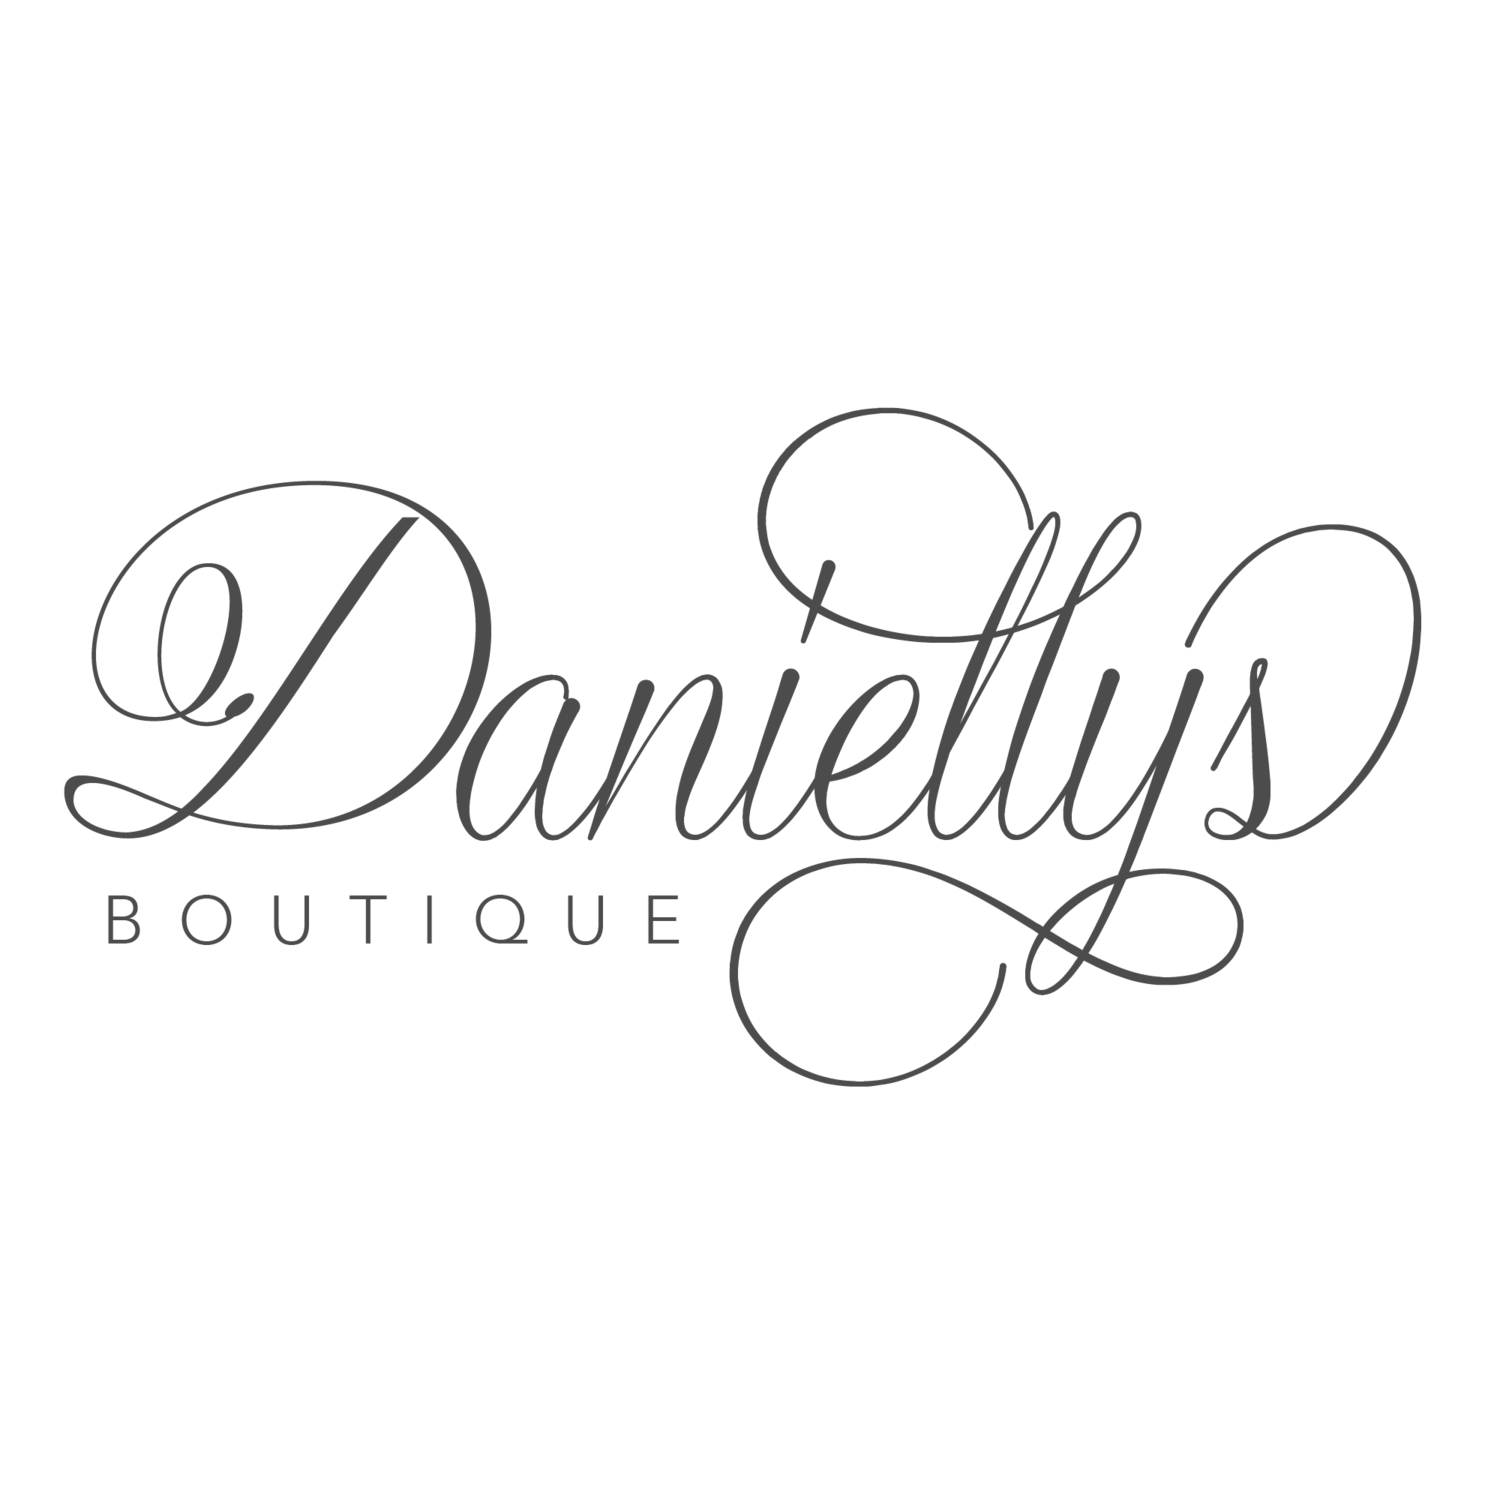 Danielly's Boutique